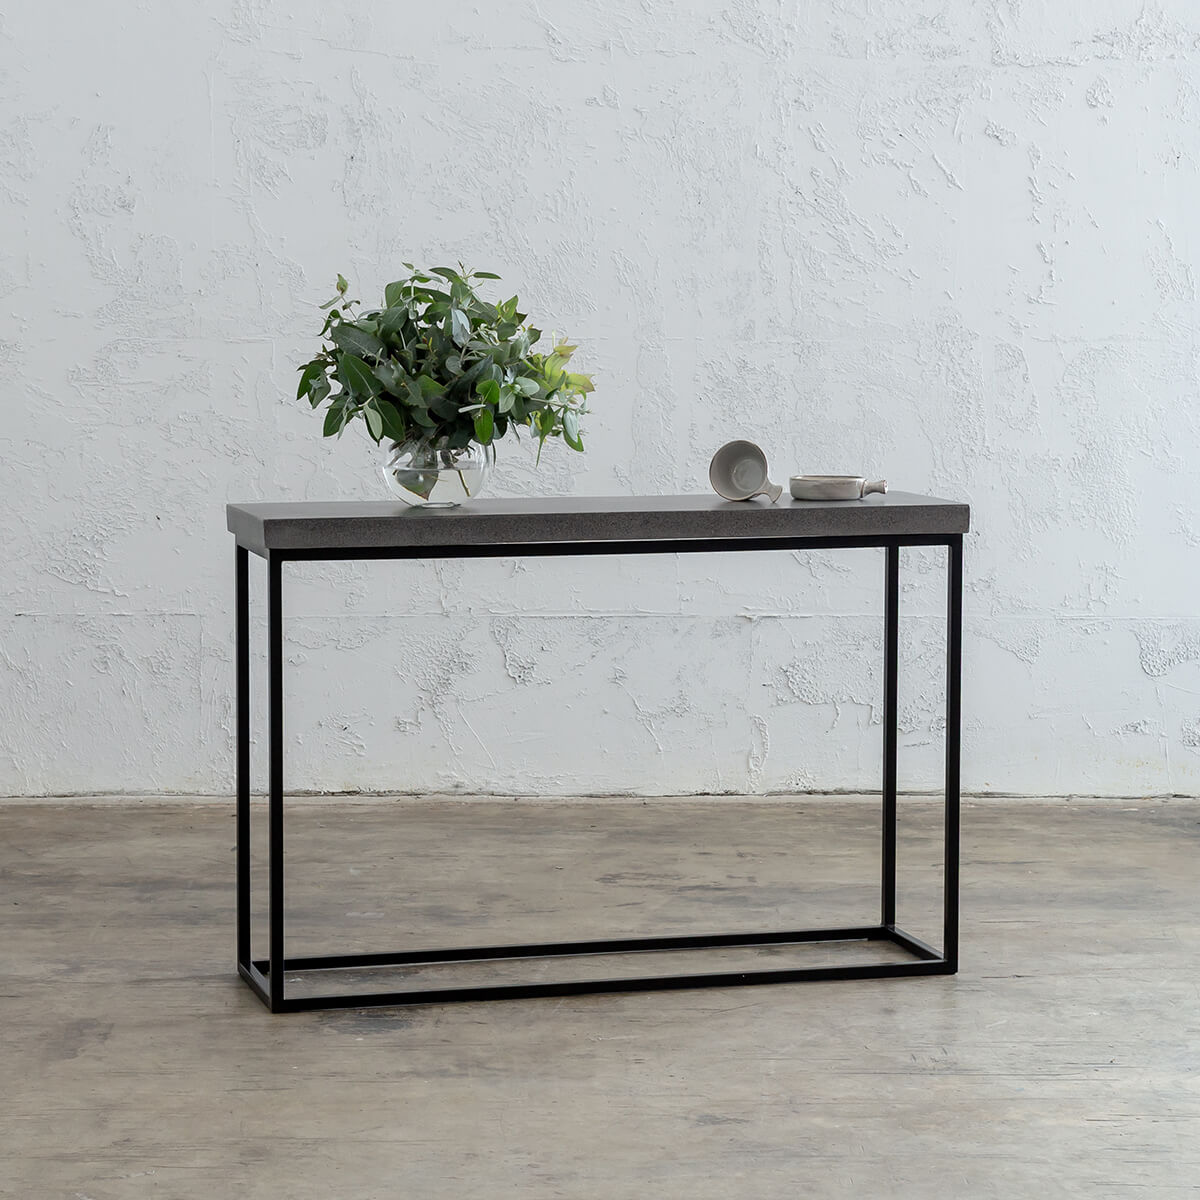 ARIA CONCRETE GRANITE CONSOLE HALL TABLE   |  CONCRETE TABLE  |  INDOOR OUTDOOR FURNITURE